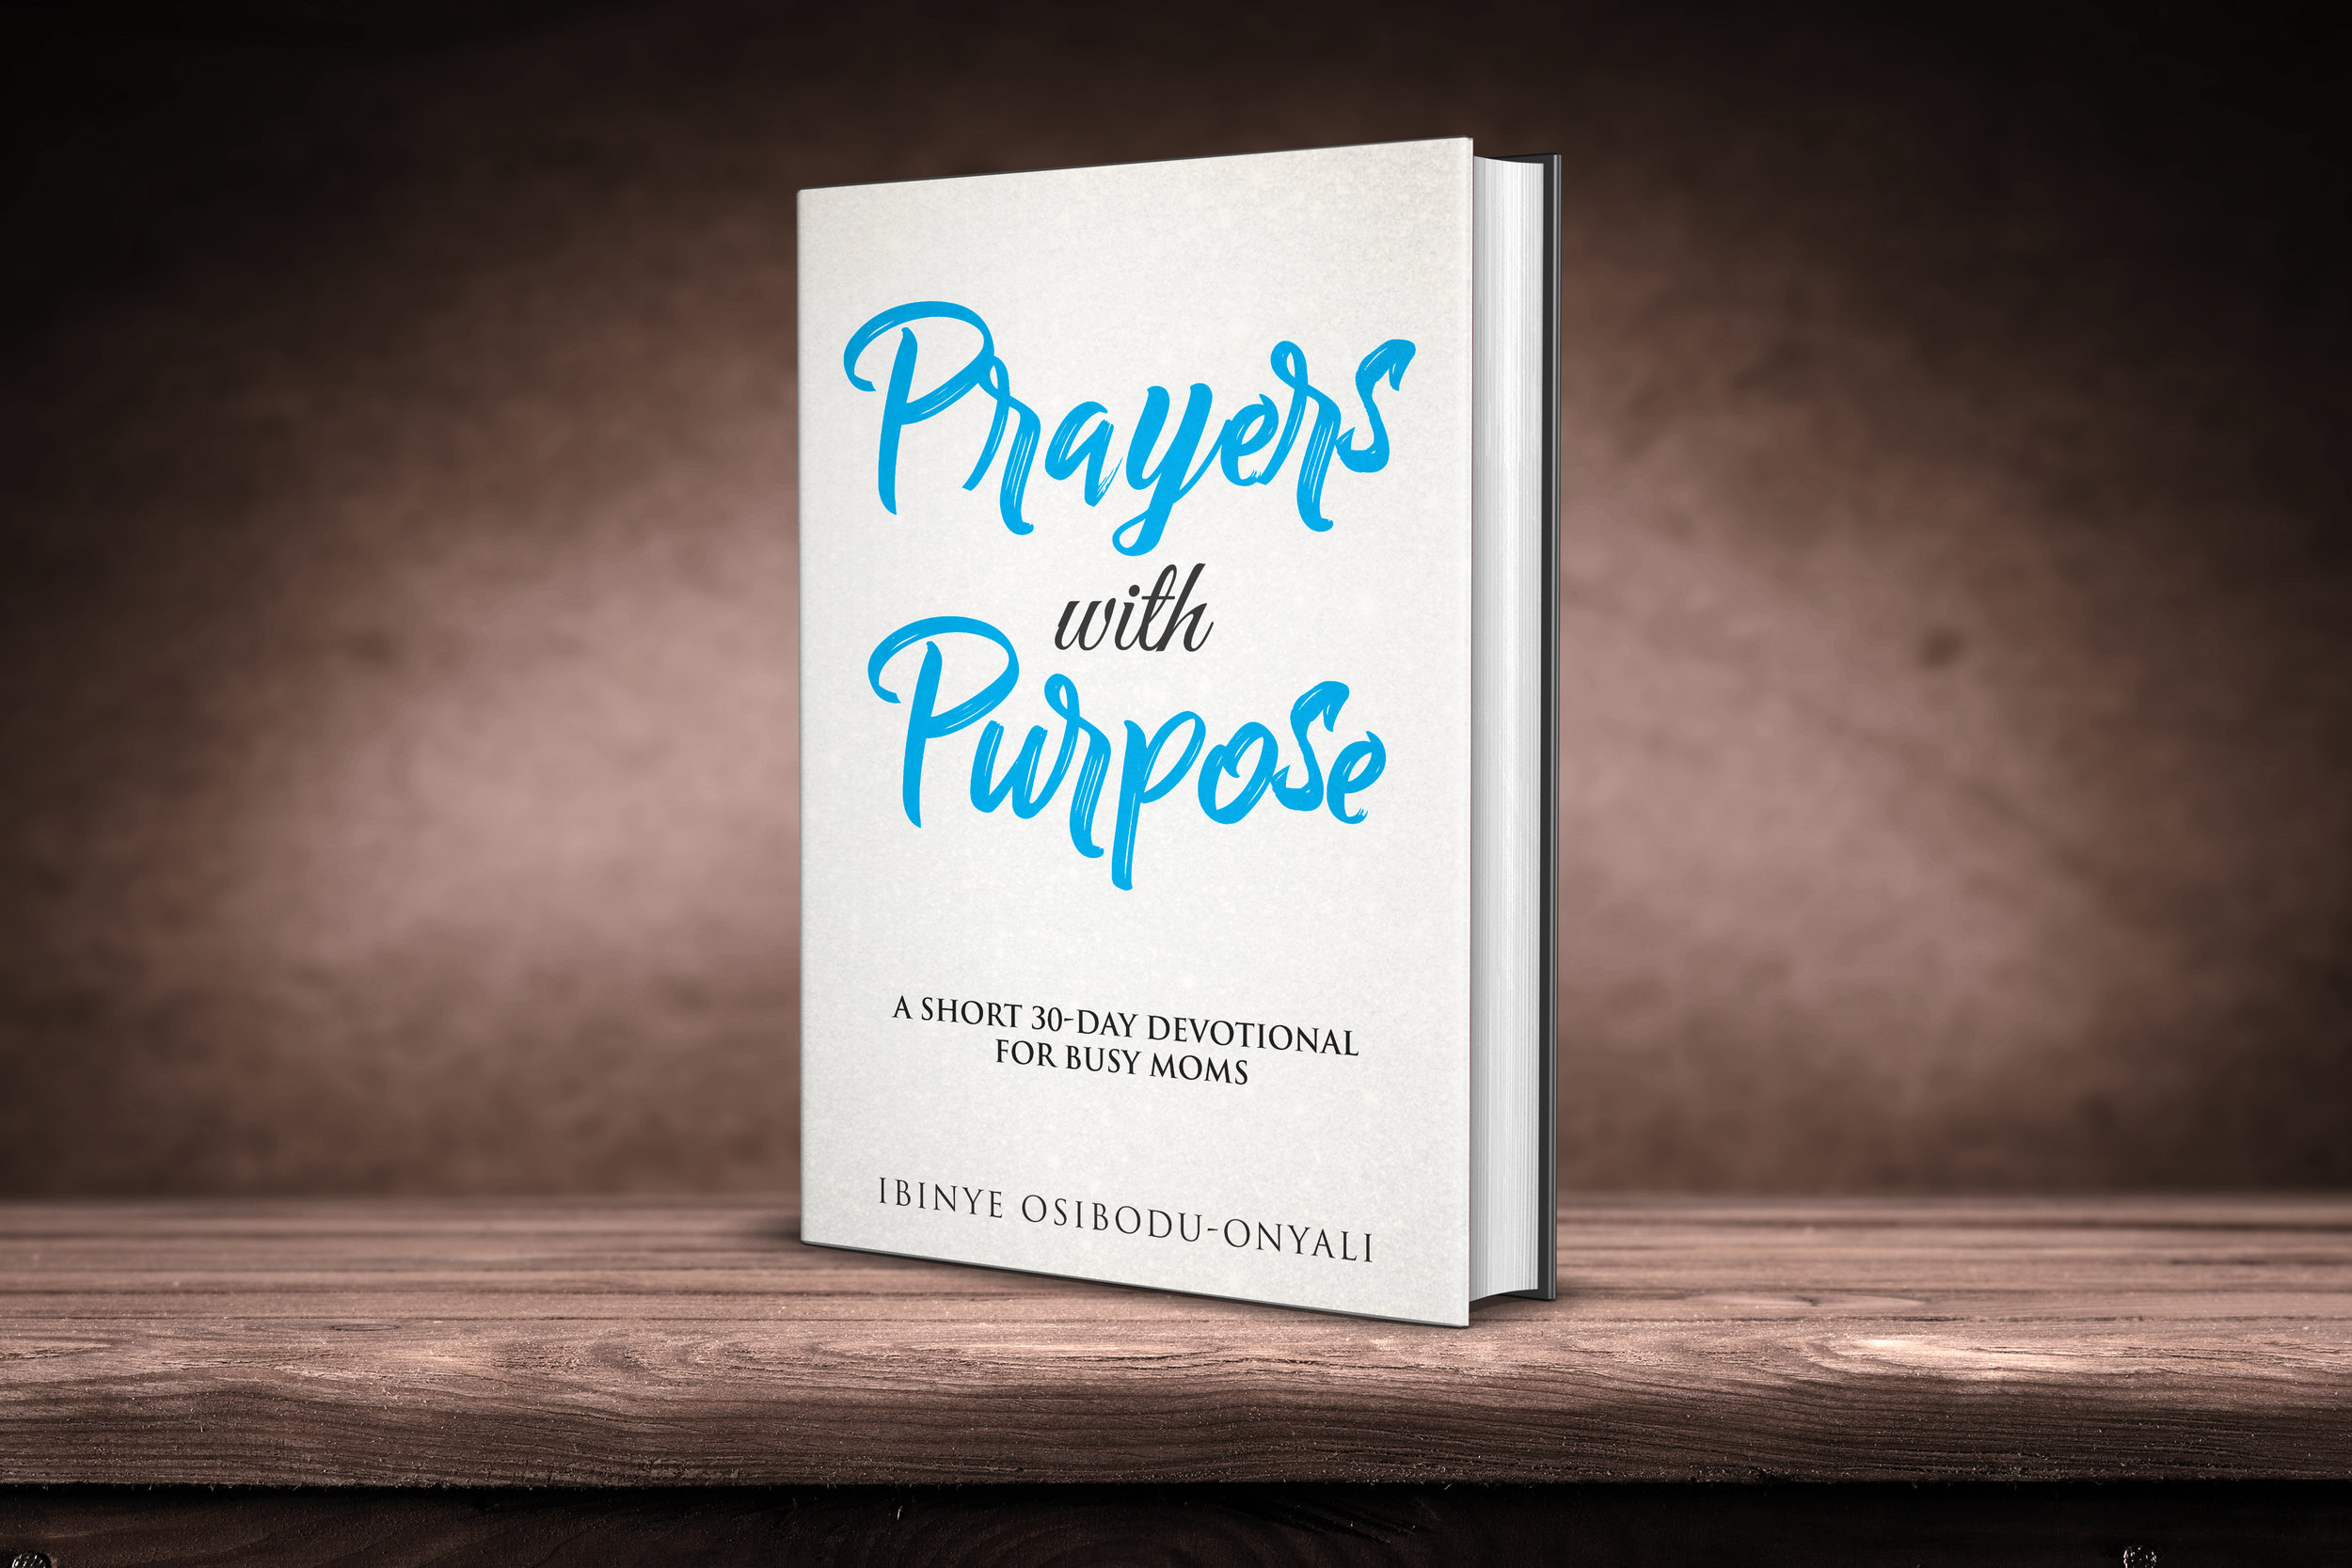 Prayers with Purpose: A short 30-day devotional for busy moms